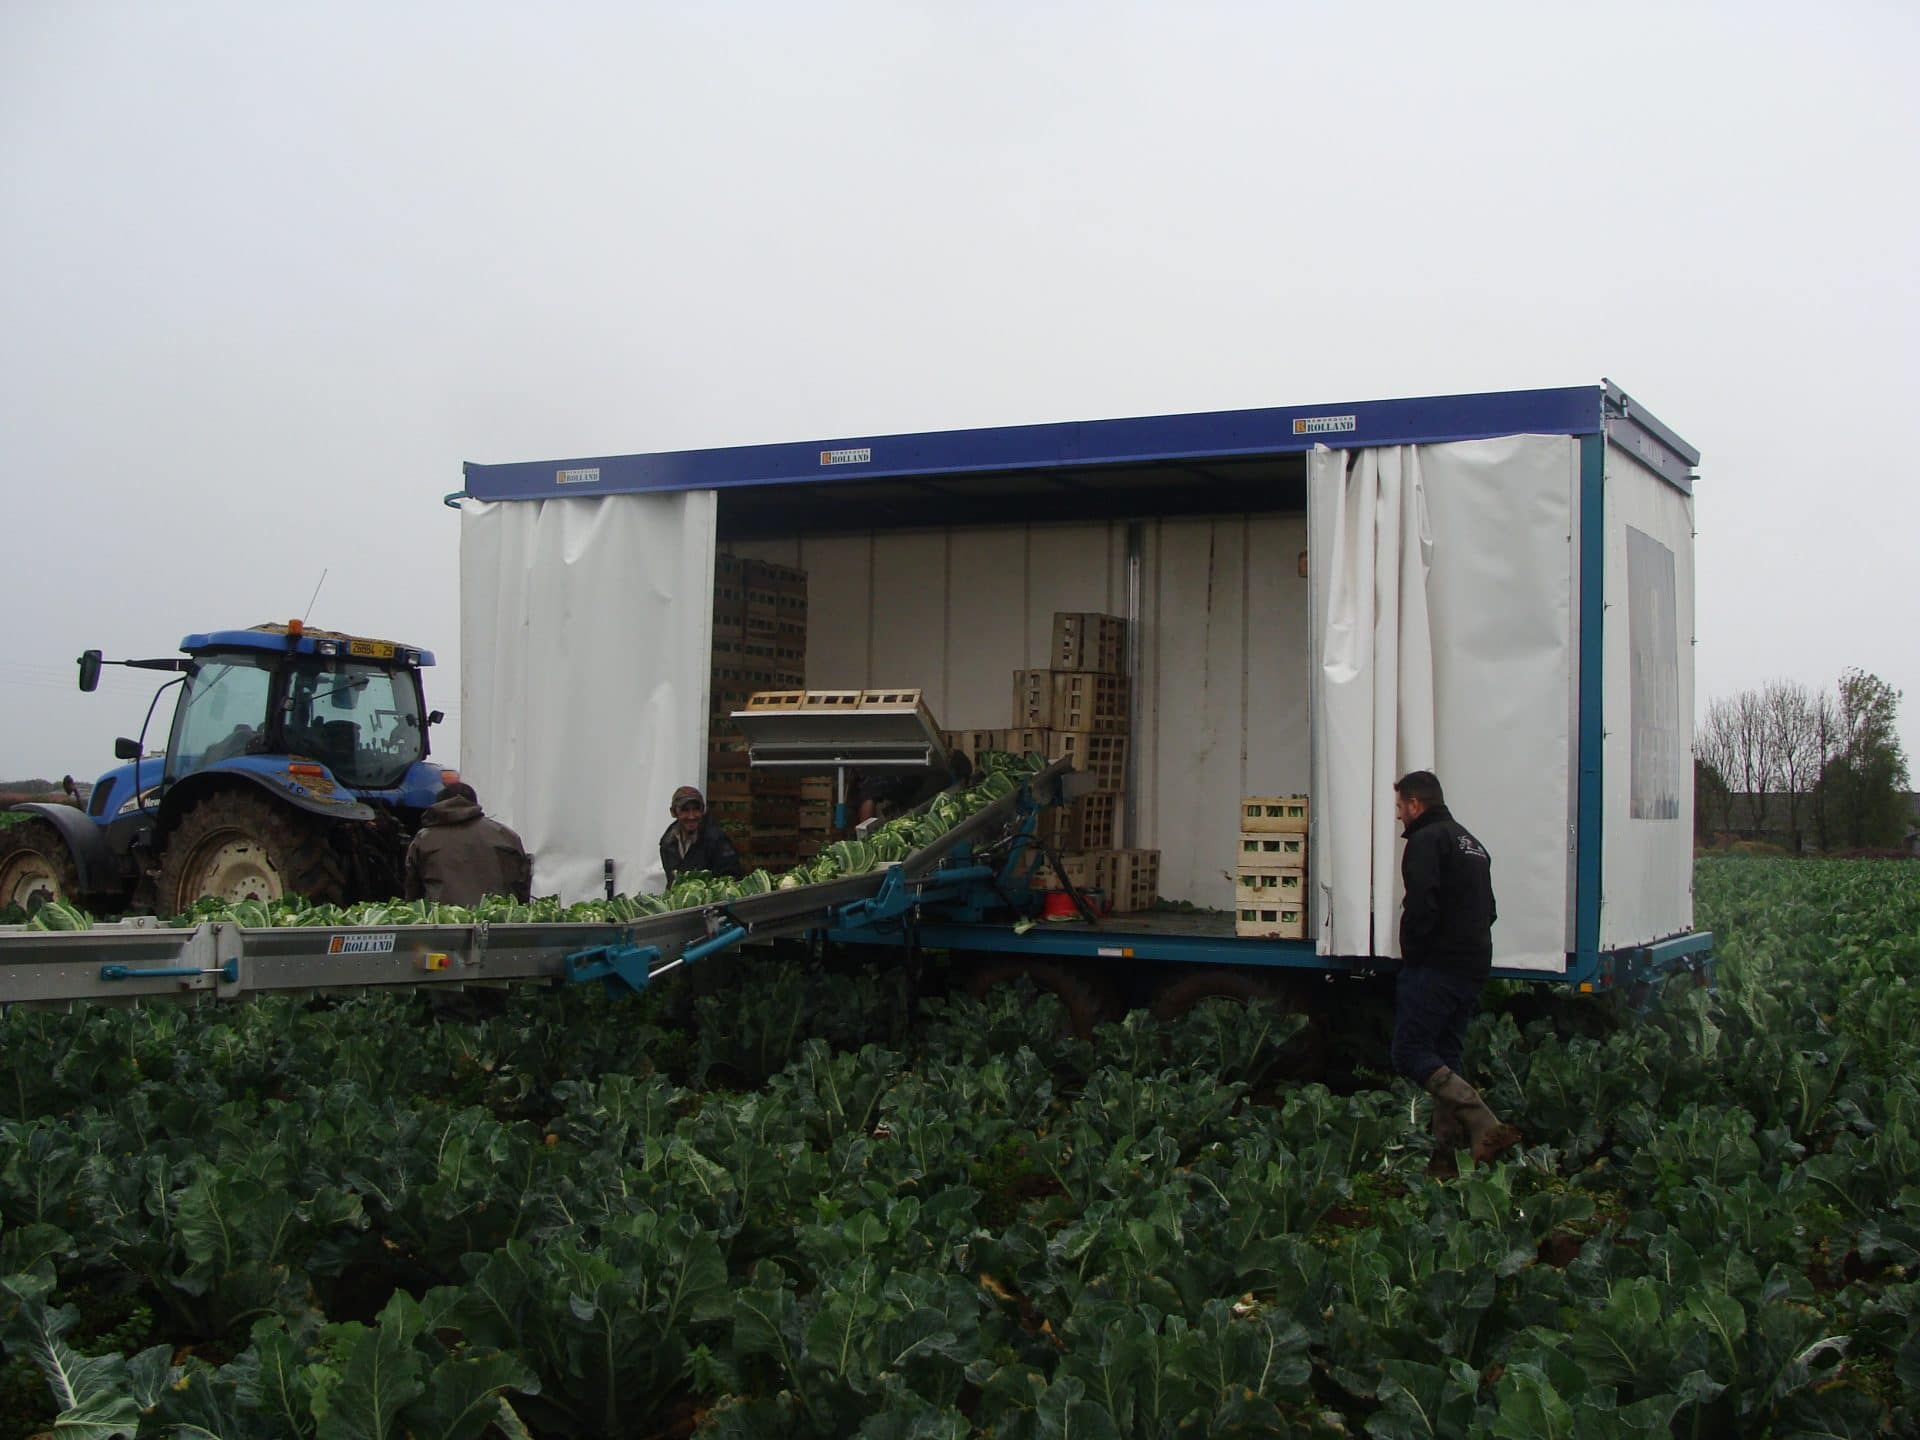 Vegetable trailer 65